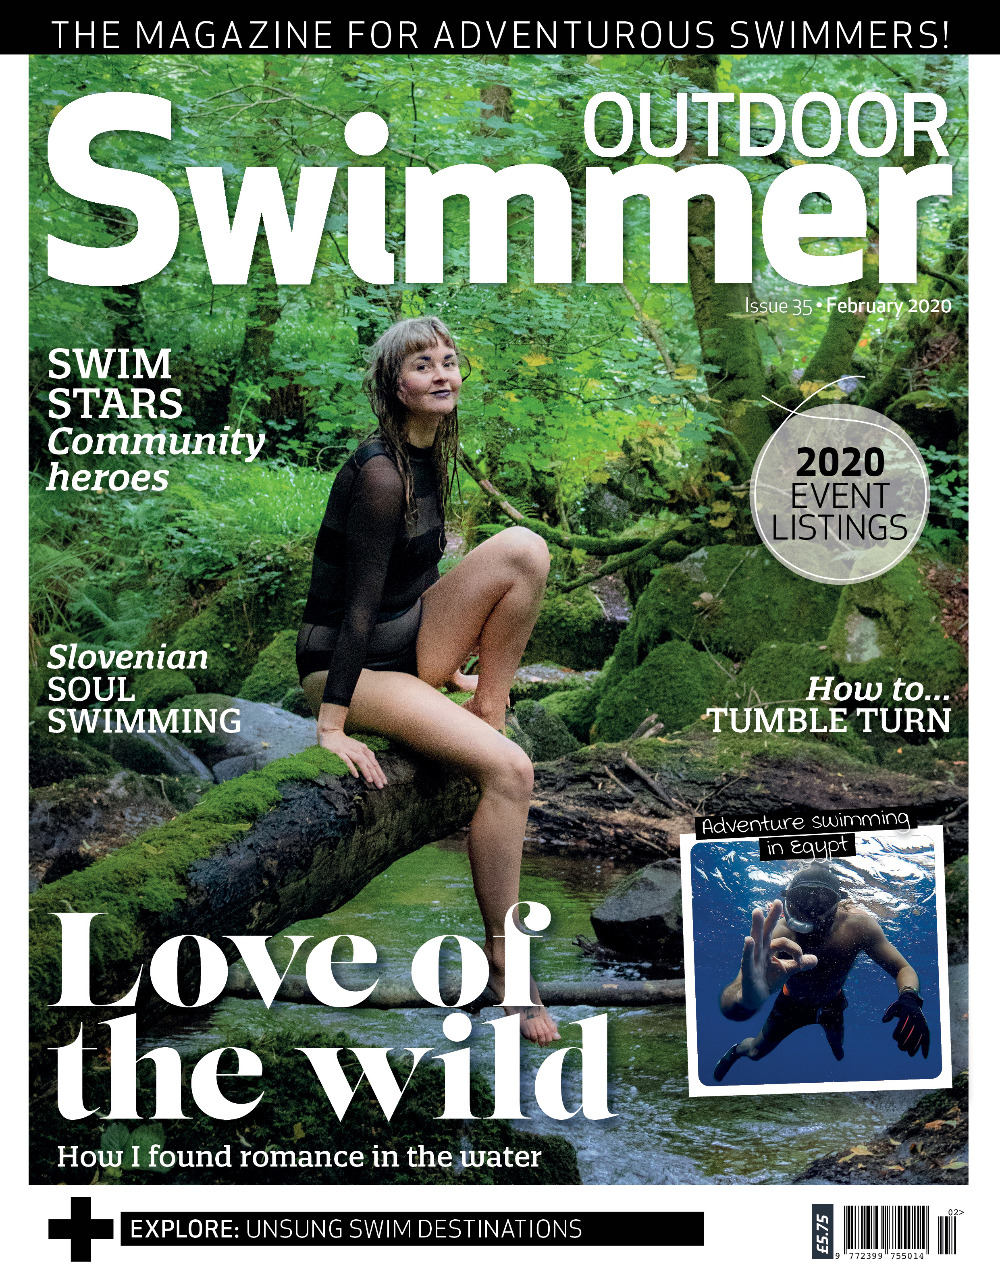 Outdoor Swimmer february 2020 issue